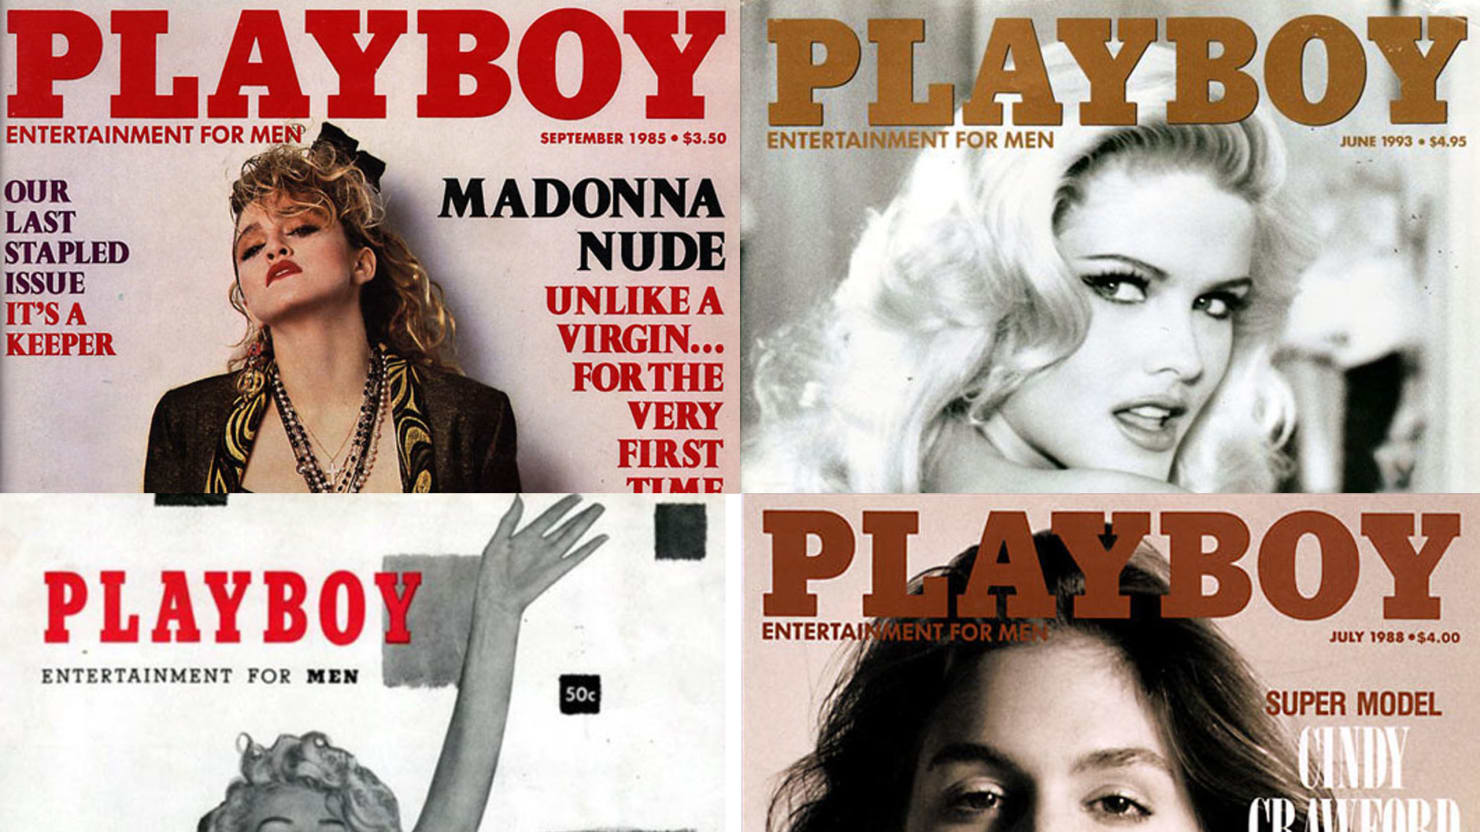 60 Years of Playboy: The Most Iconic Playboy Covers, From Marilyn Monroe to Kim Kardashian